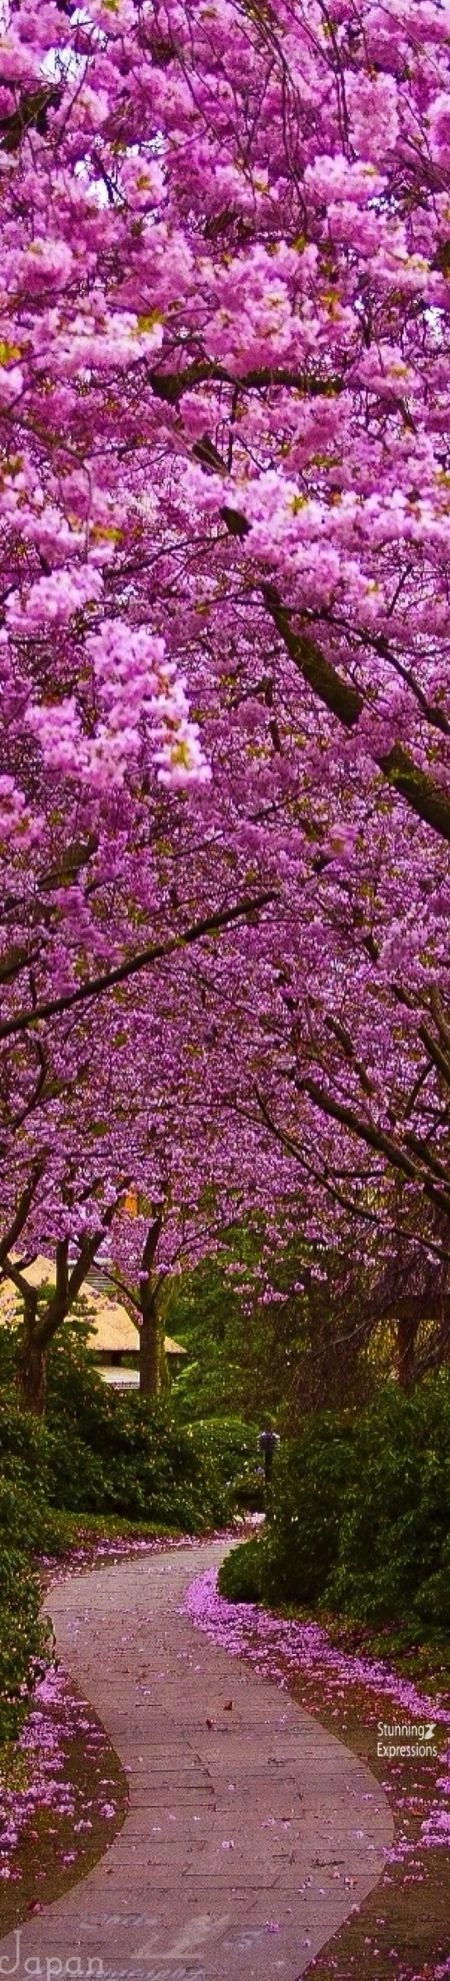 Pin By Stunning Expressions On Japan Travel In 2021 Beautiful Nature Nature Beautiful Tree